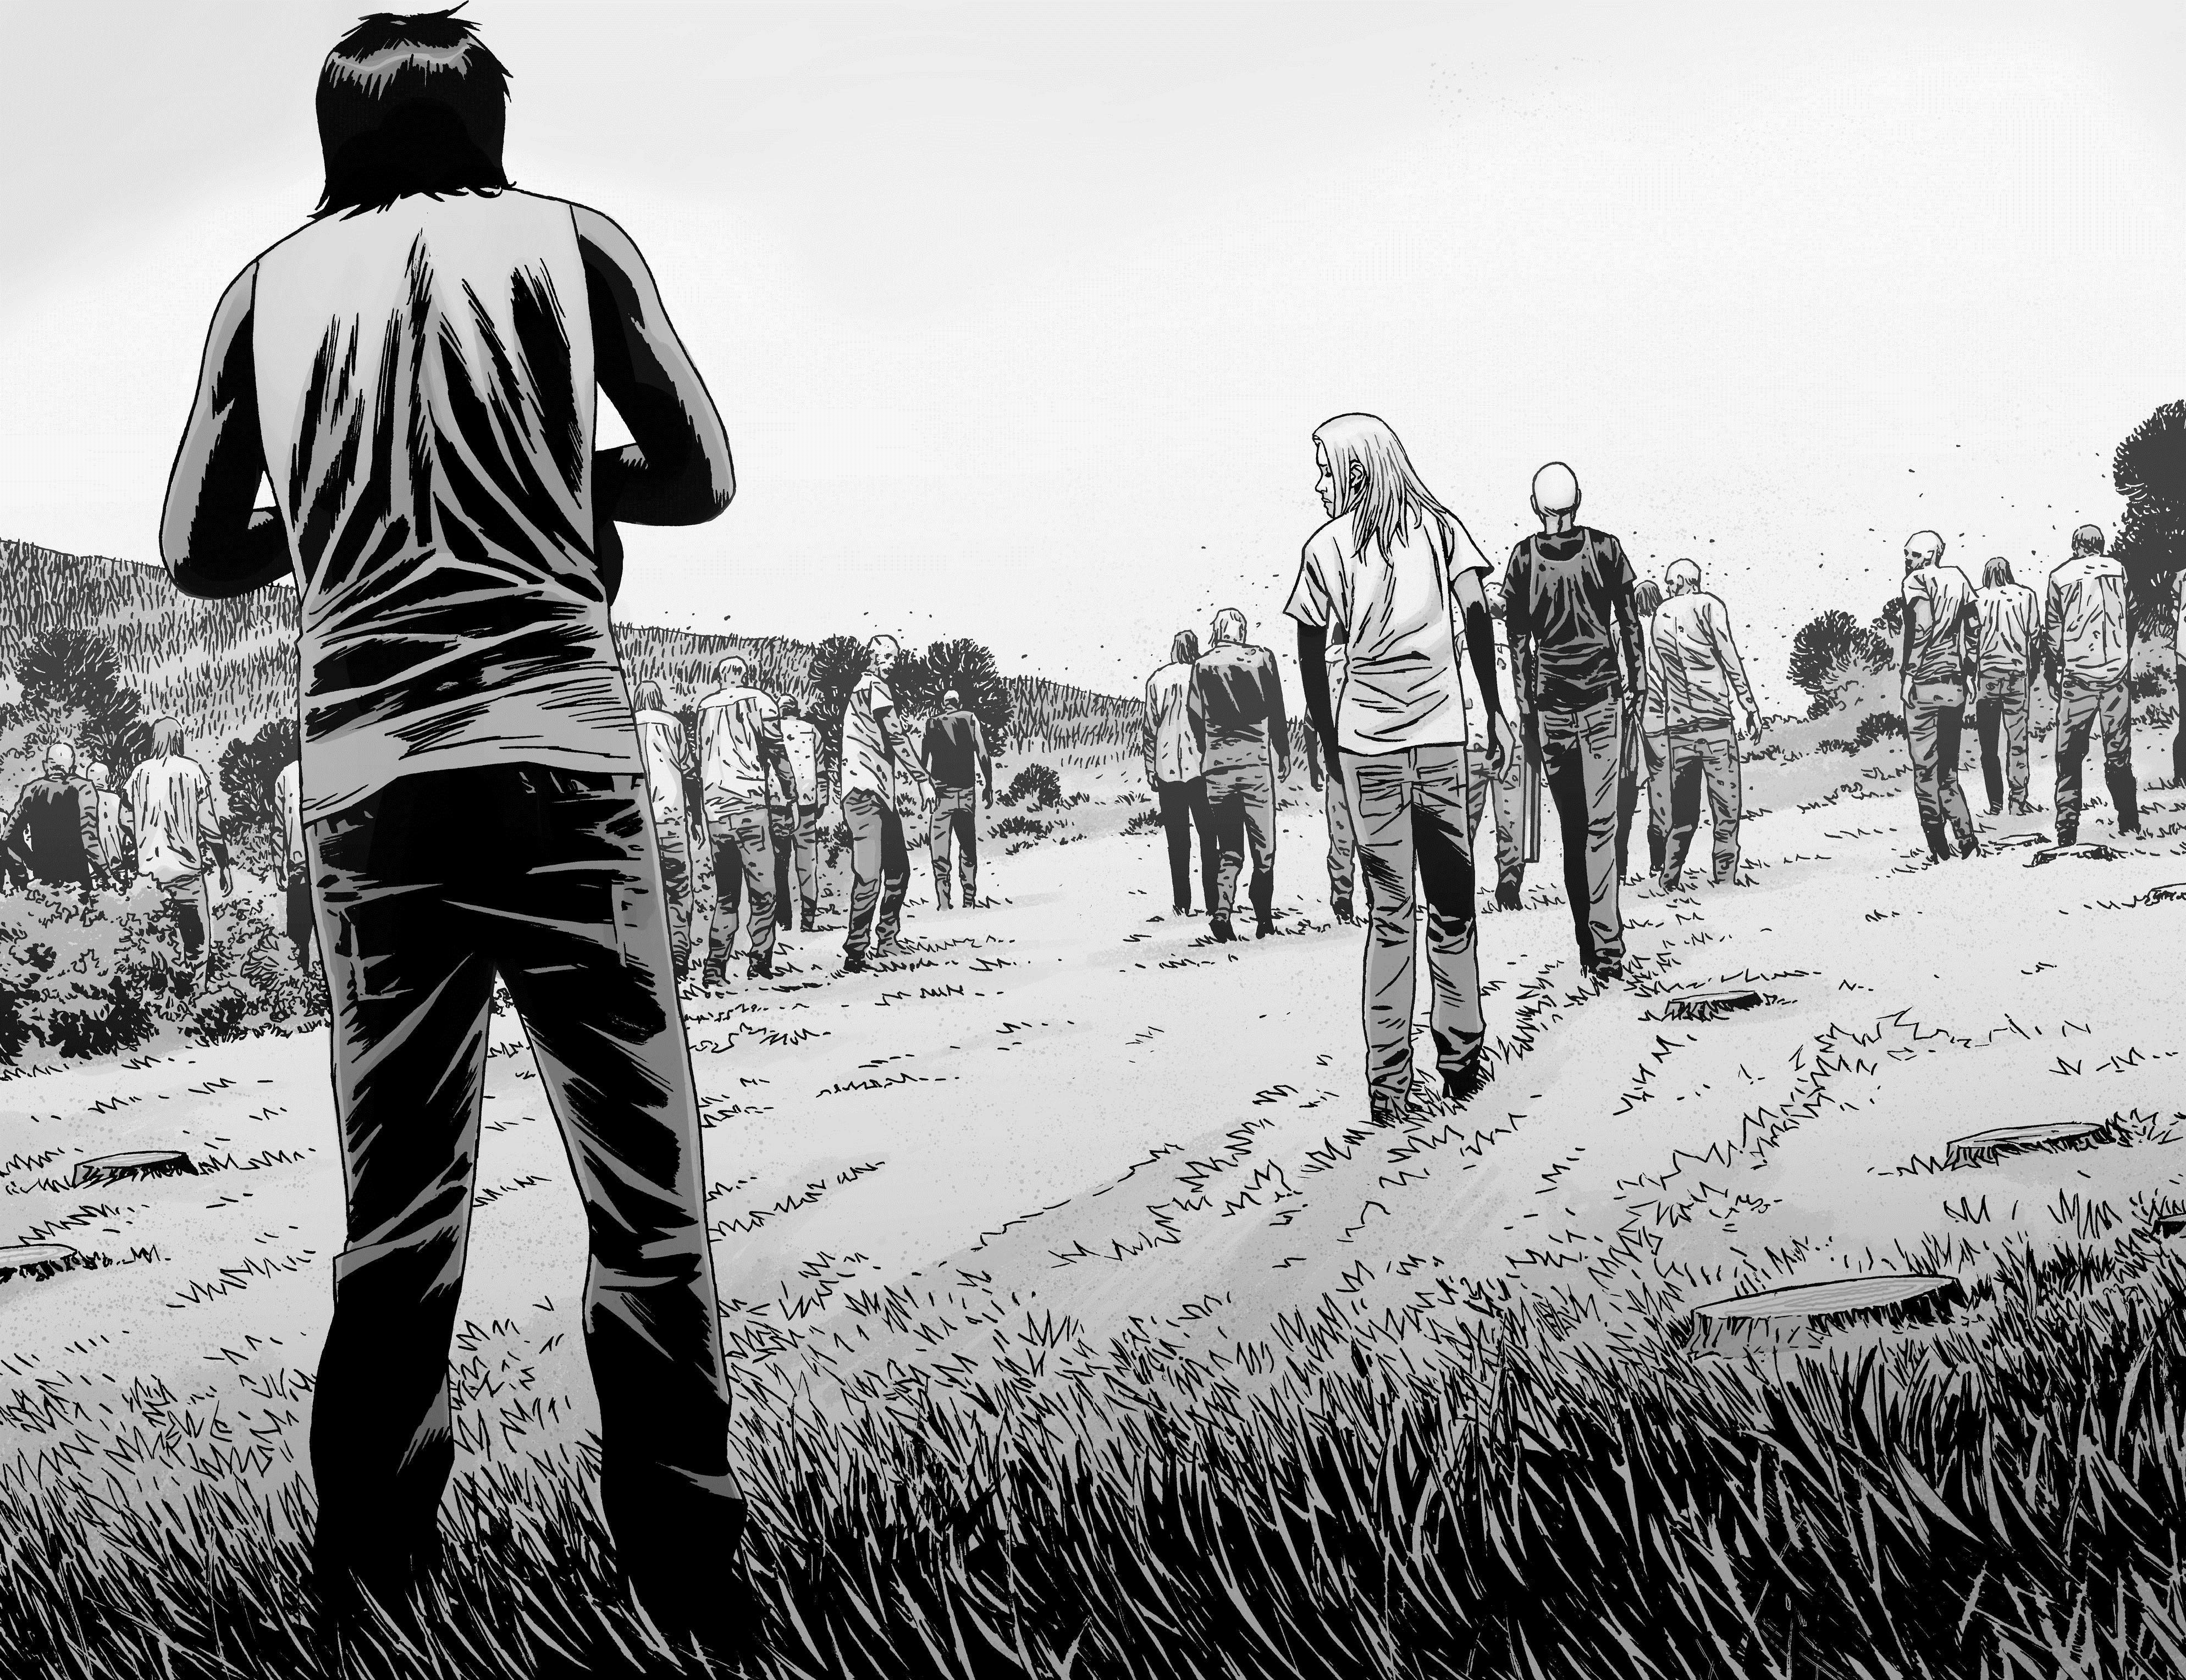 The Walking Dead Whispers Into Screams review